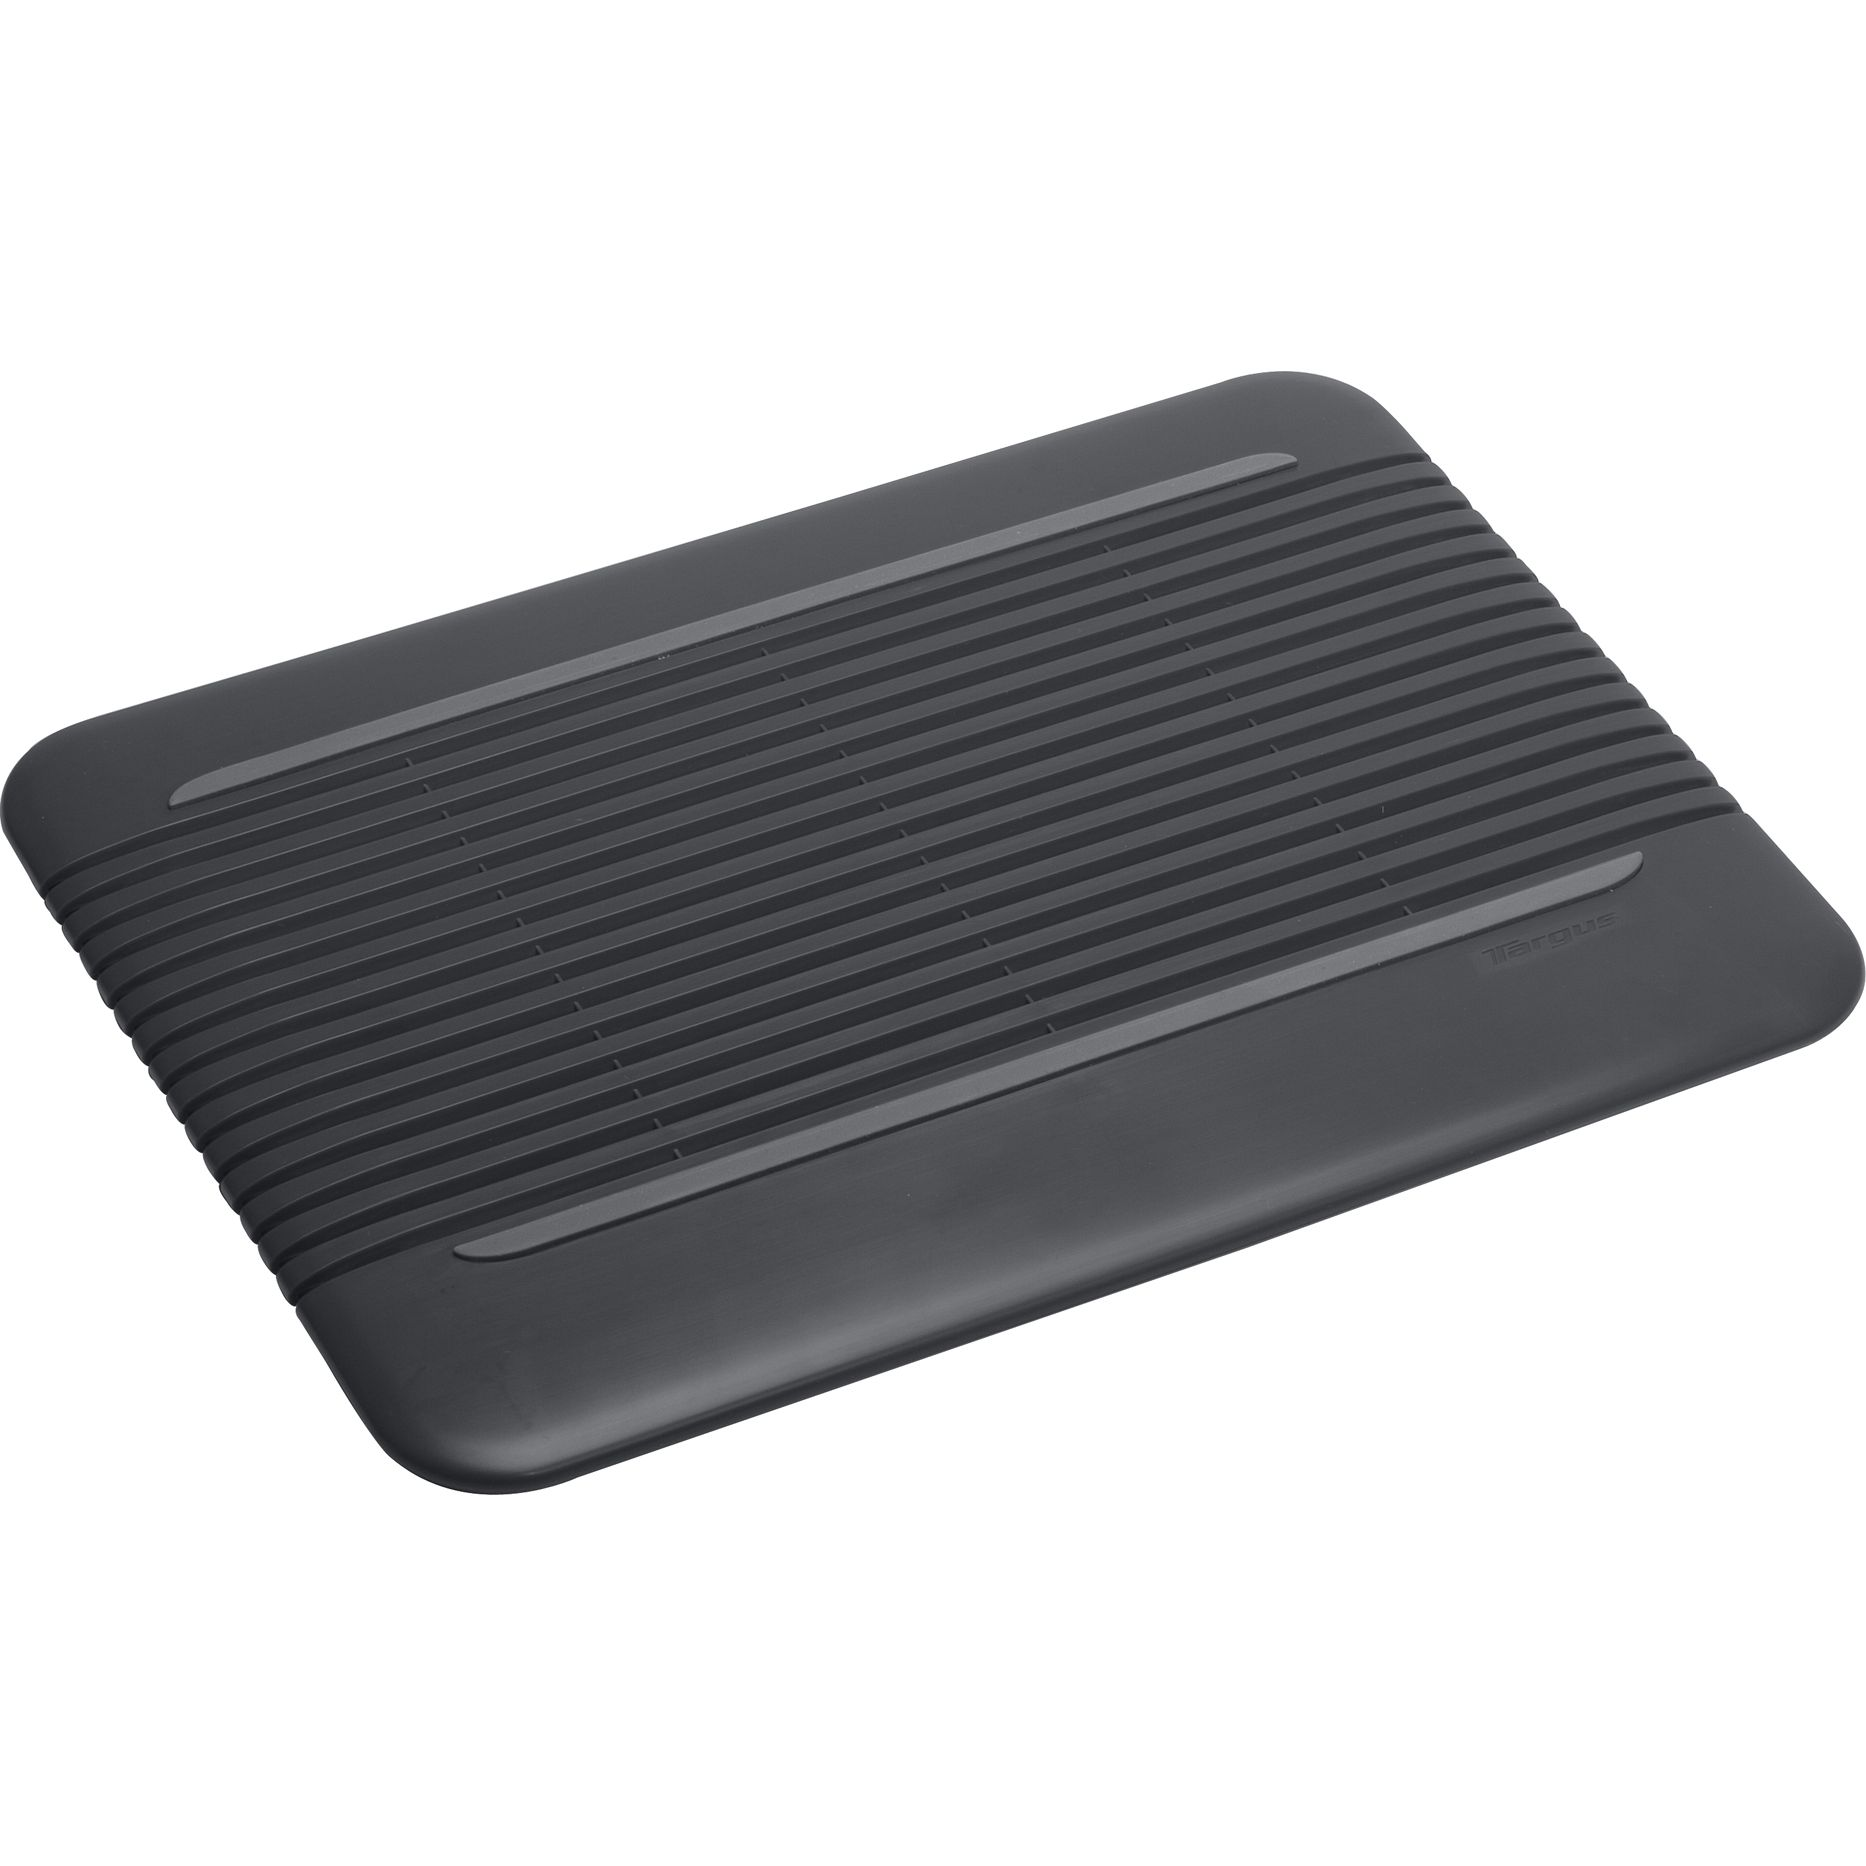 Chill Mat Xc For Laptops Awe19us Black Cooling Targus